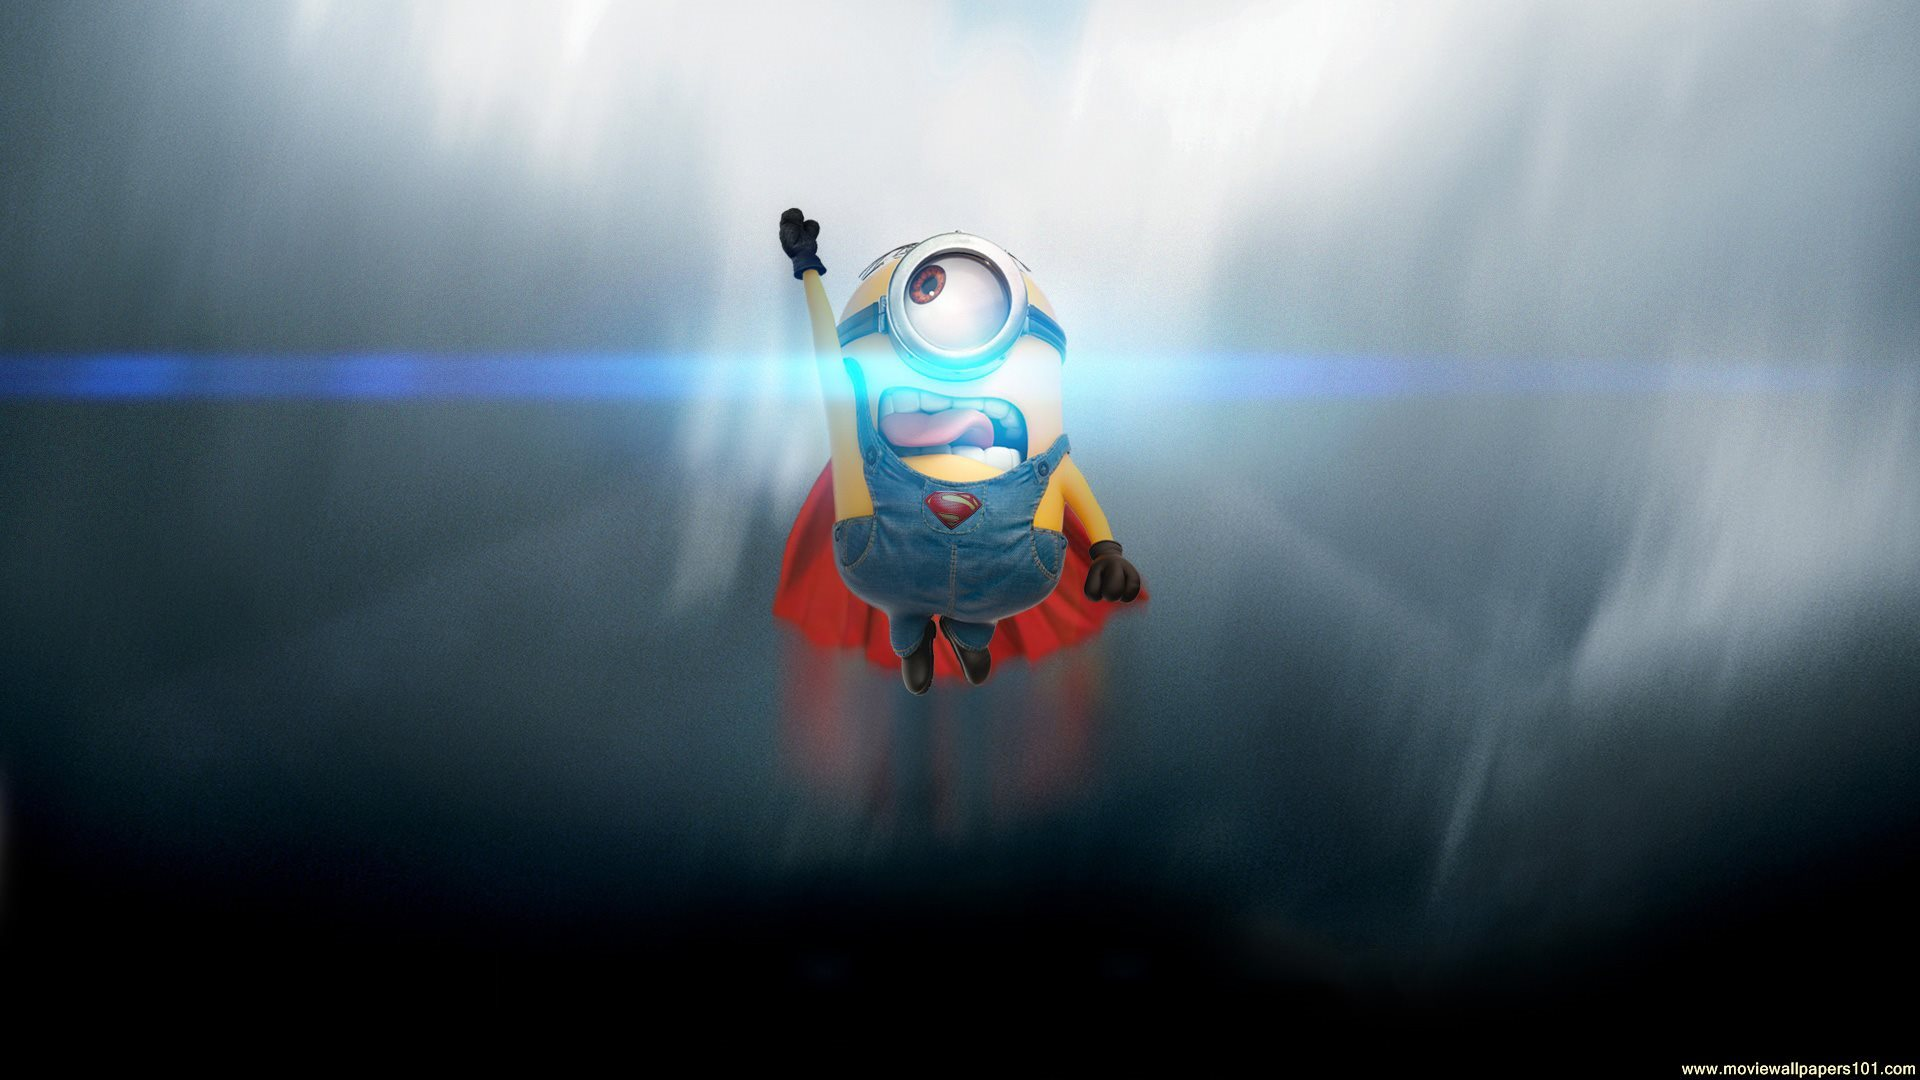 Download Minions 2015 Movie The Superman HD Wallpaper Search more 1920x1080